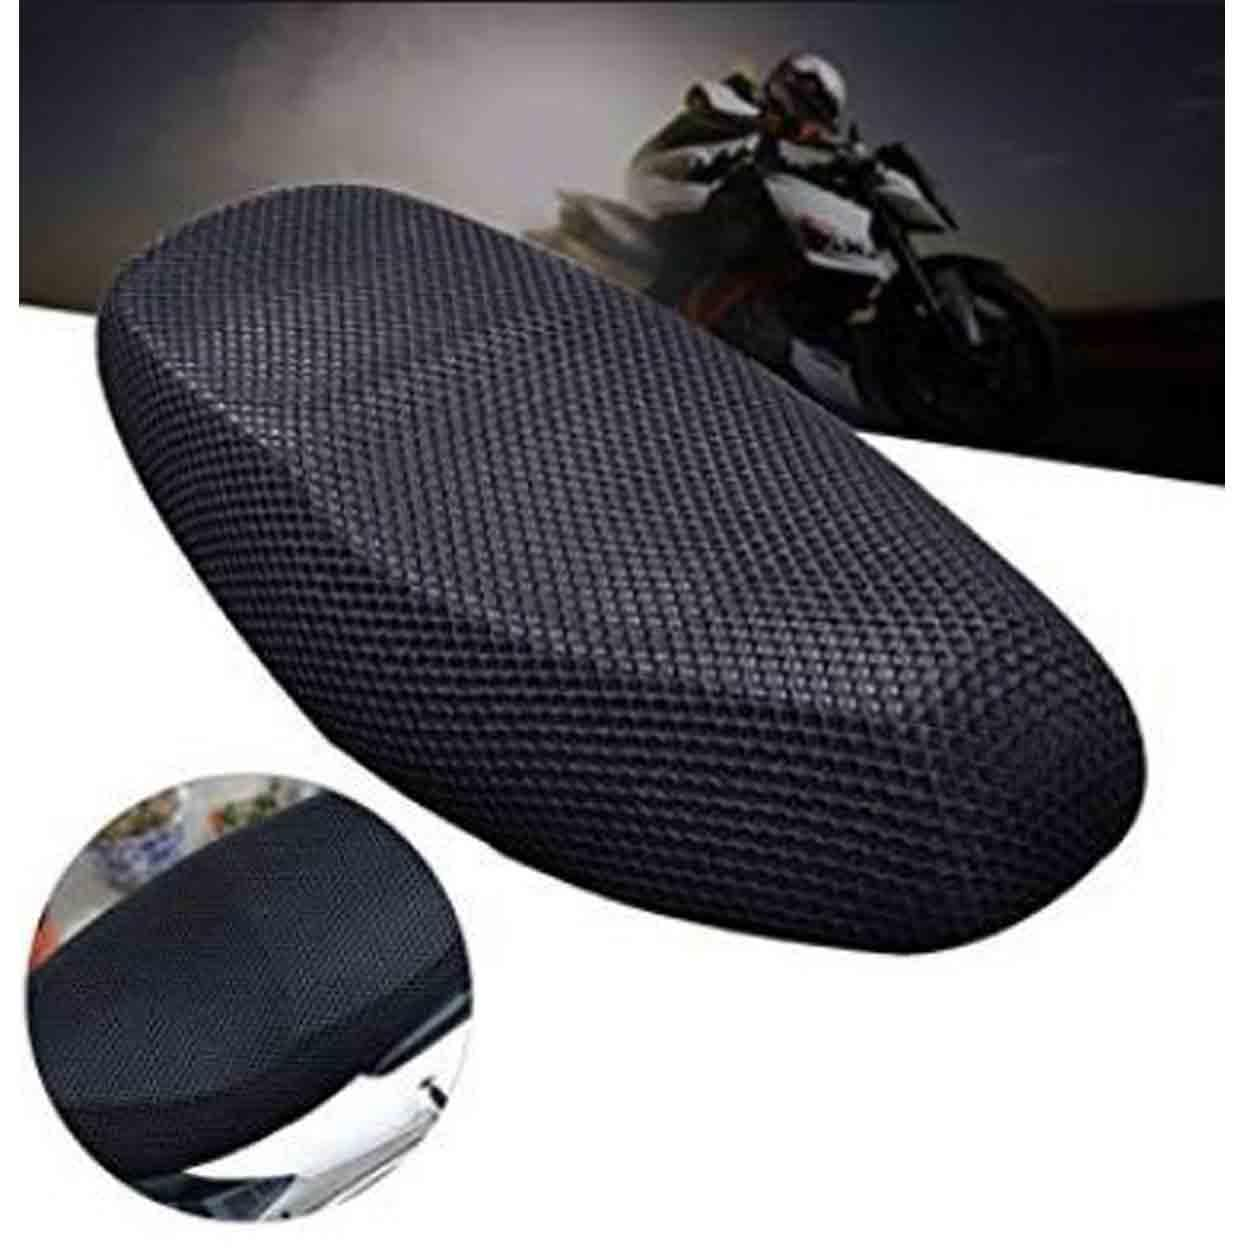 Motorcycle Seat Cover For Sale Seat Pads Online Brands Prices